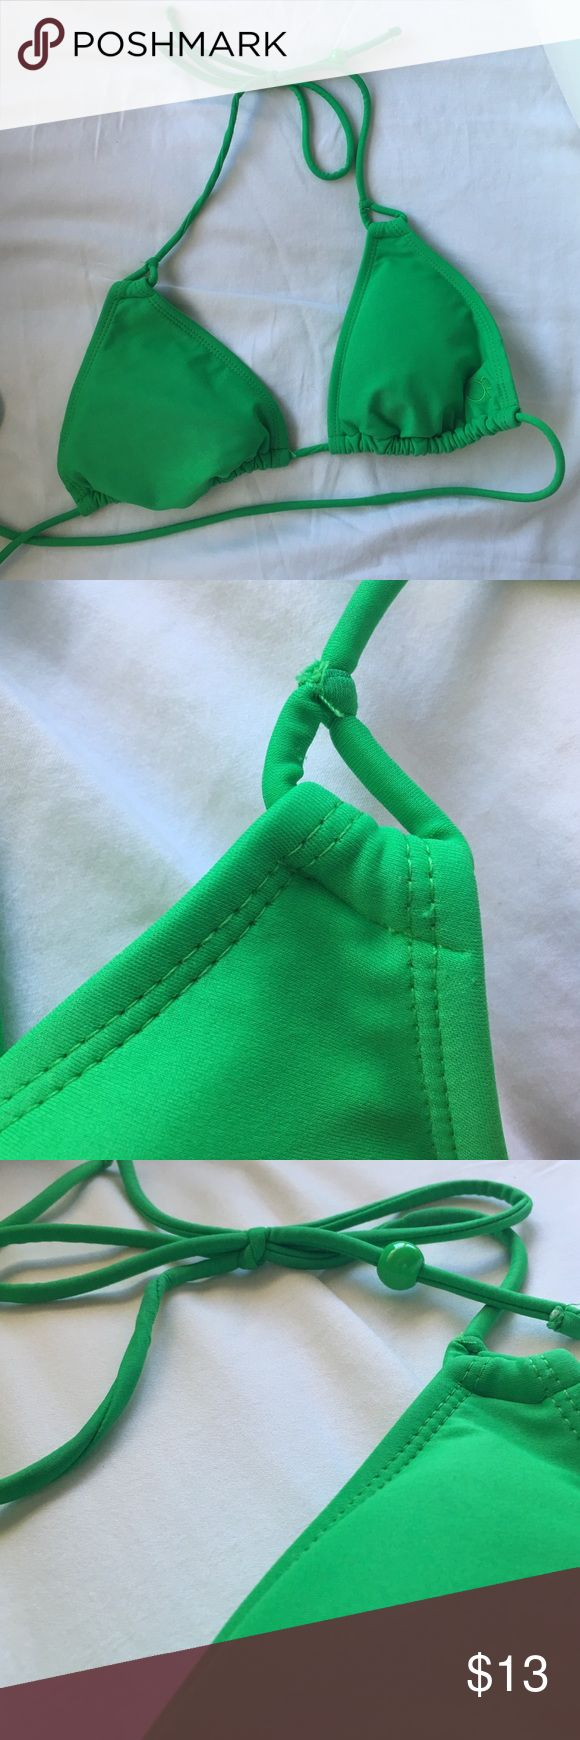 Green triangle bikini top New, never worn, no sign of use. Tie top, adjustable!  JUST THE TOP. Tagged brands for exposure Frankie's Bikinis Swim Bikinis